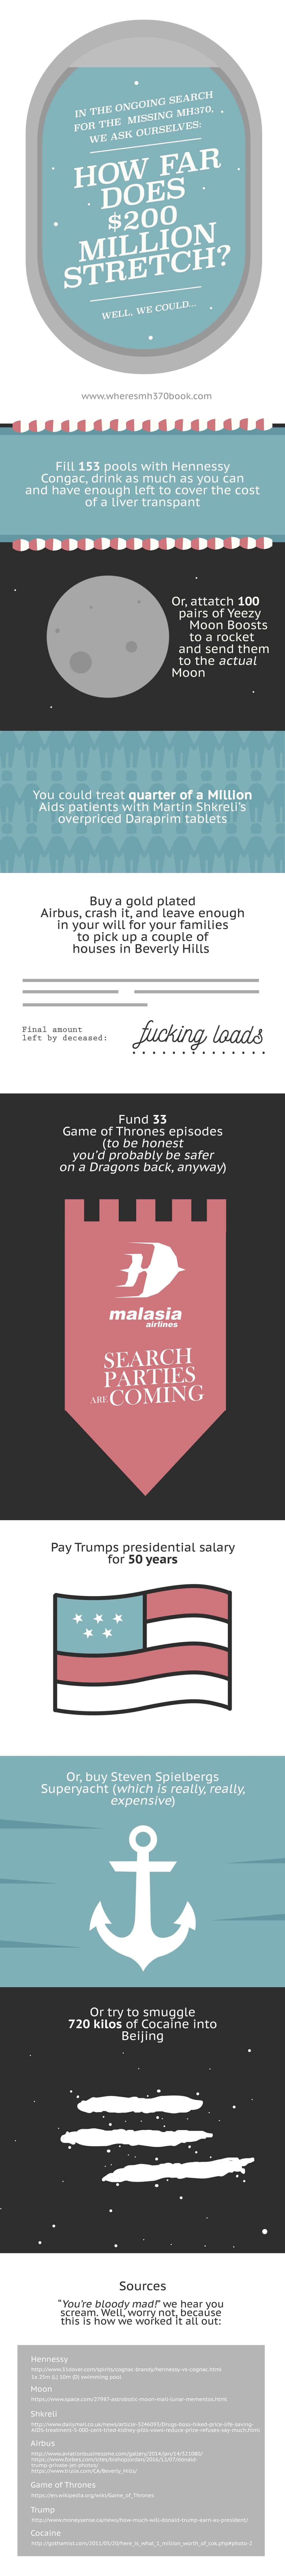 Search-for-MH370-Cost-infographic-plaza